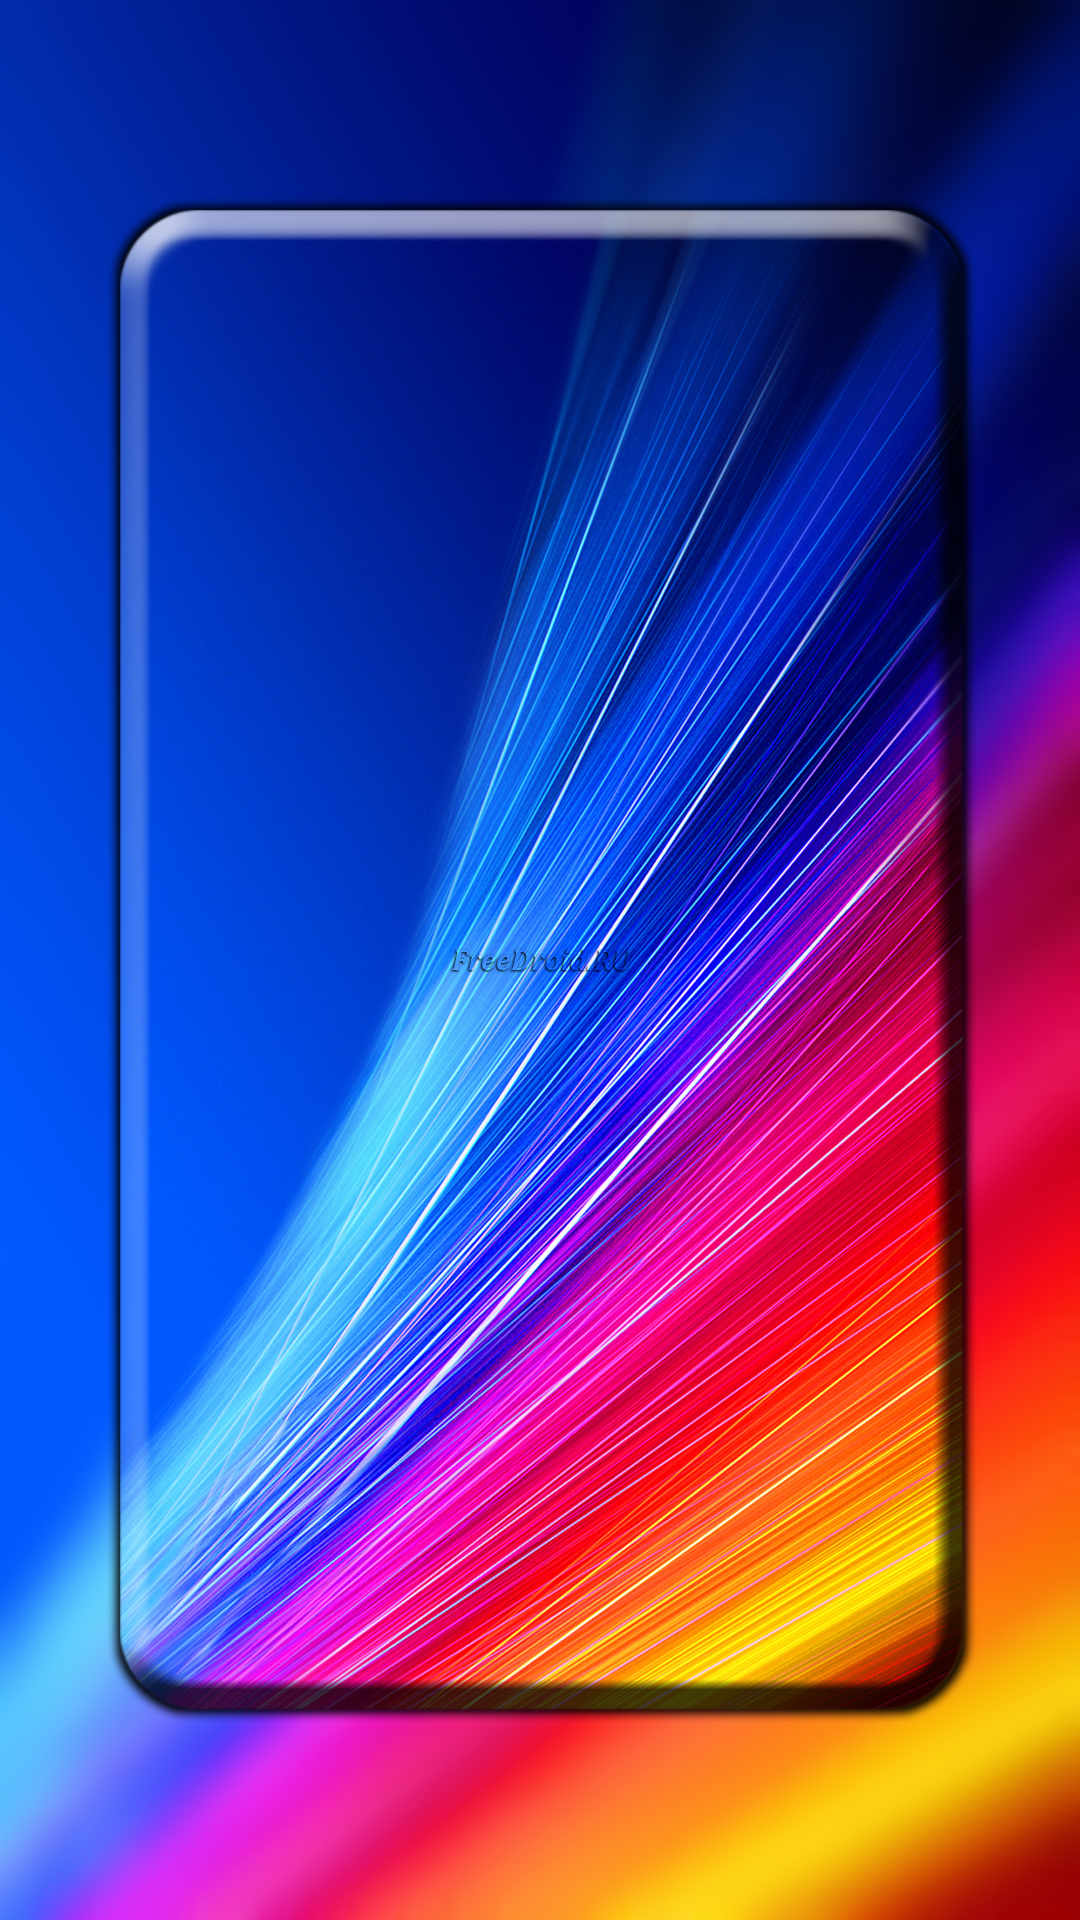 Design (Infinix Smart Stock Wallpapers) 1080x1920, 6 штук....